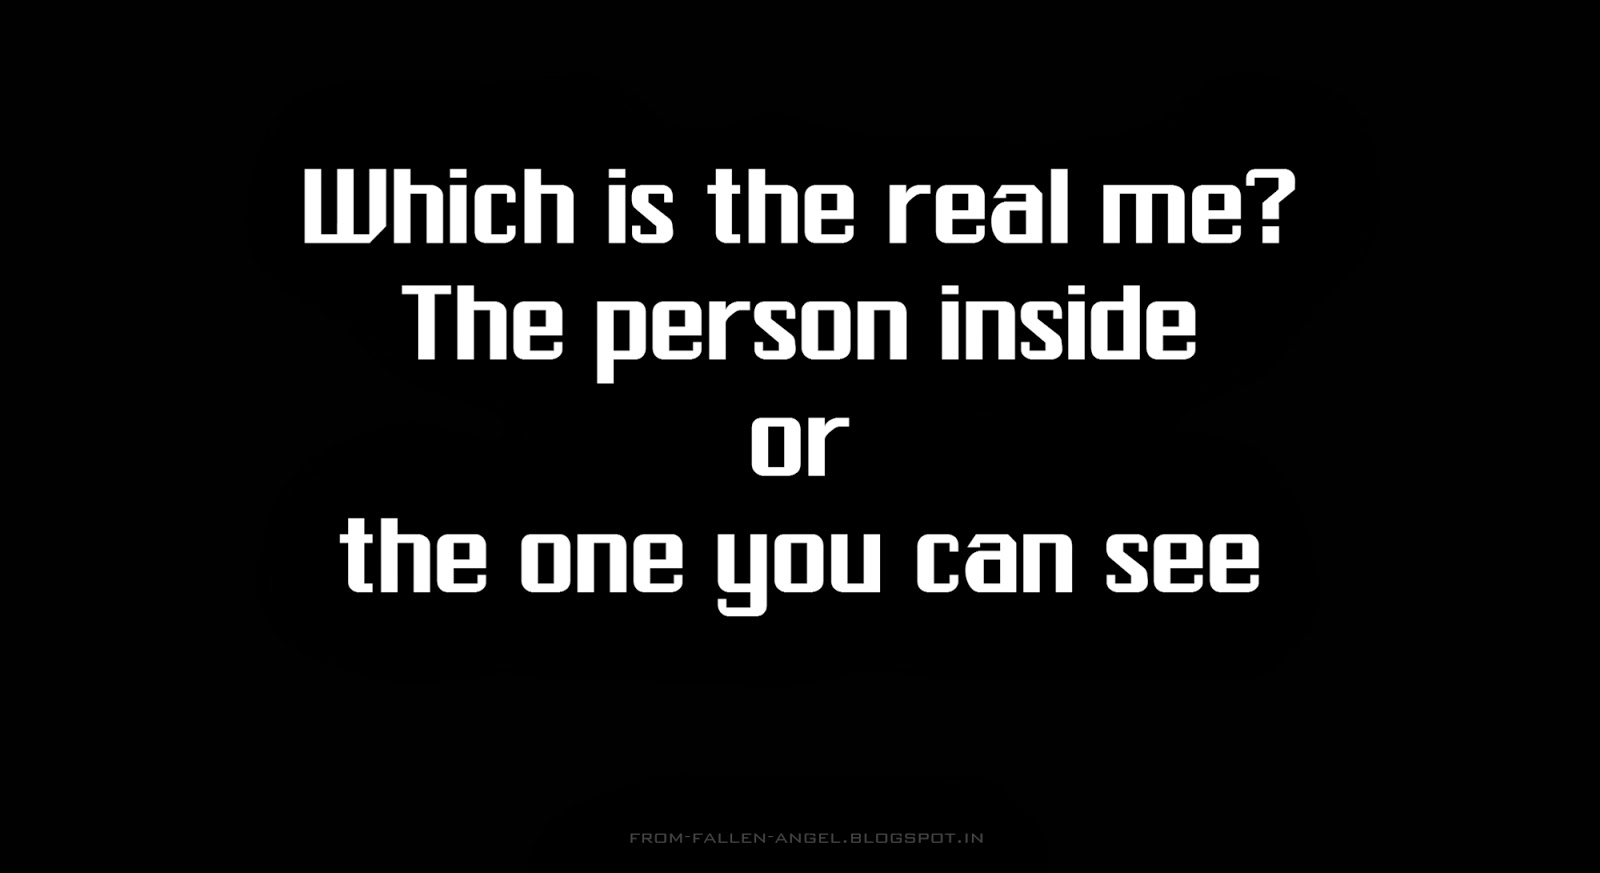 Which is the real me? The person inside, or the one you can see.